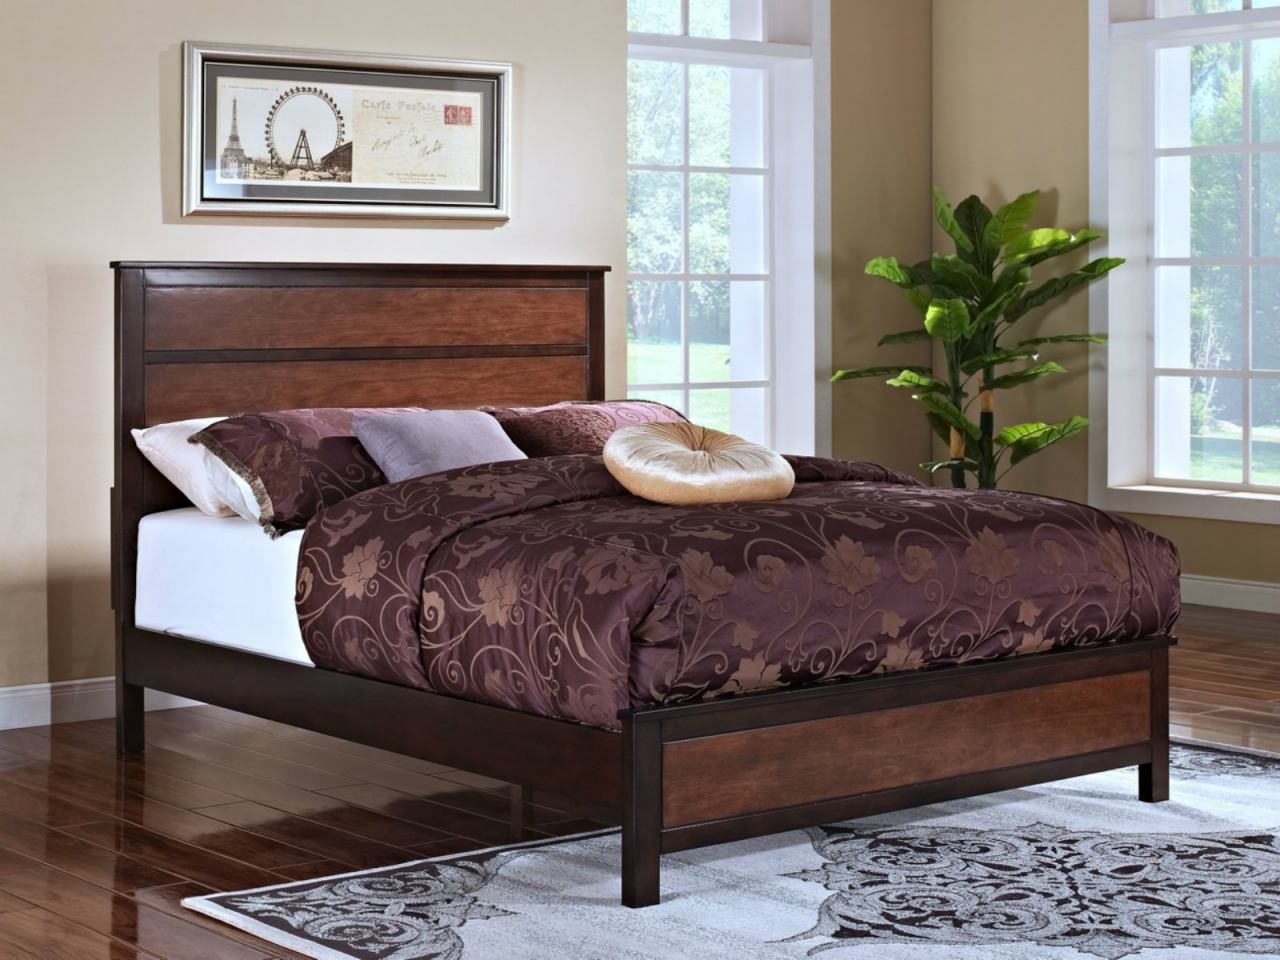 New Classic Bishop King Panel Bed in Chestnut & Ginger